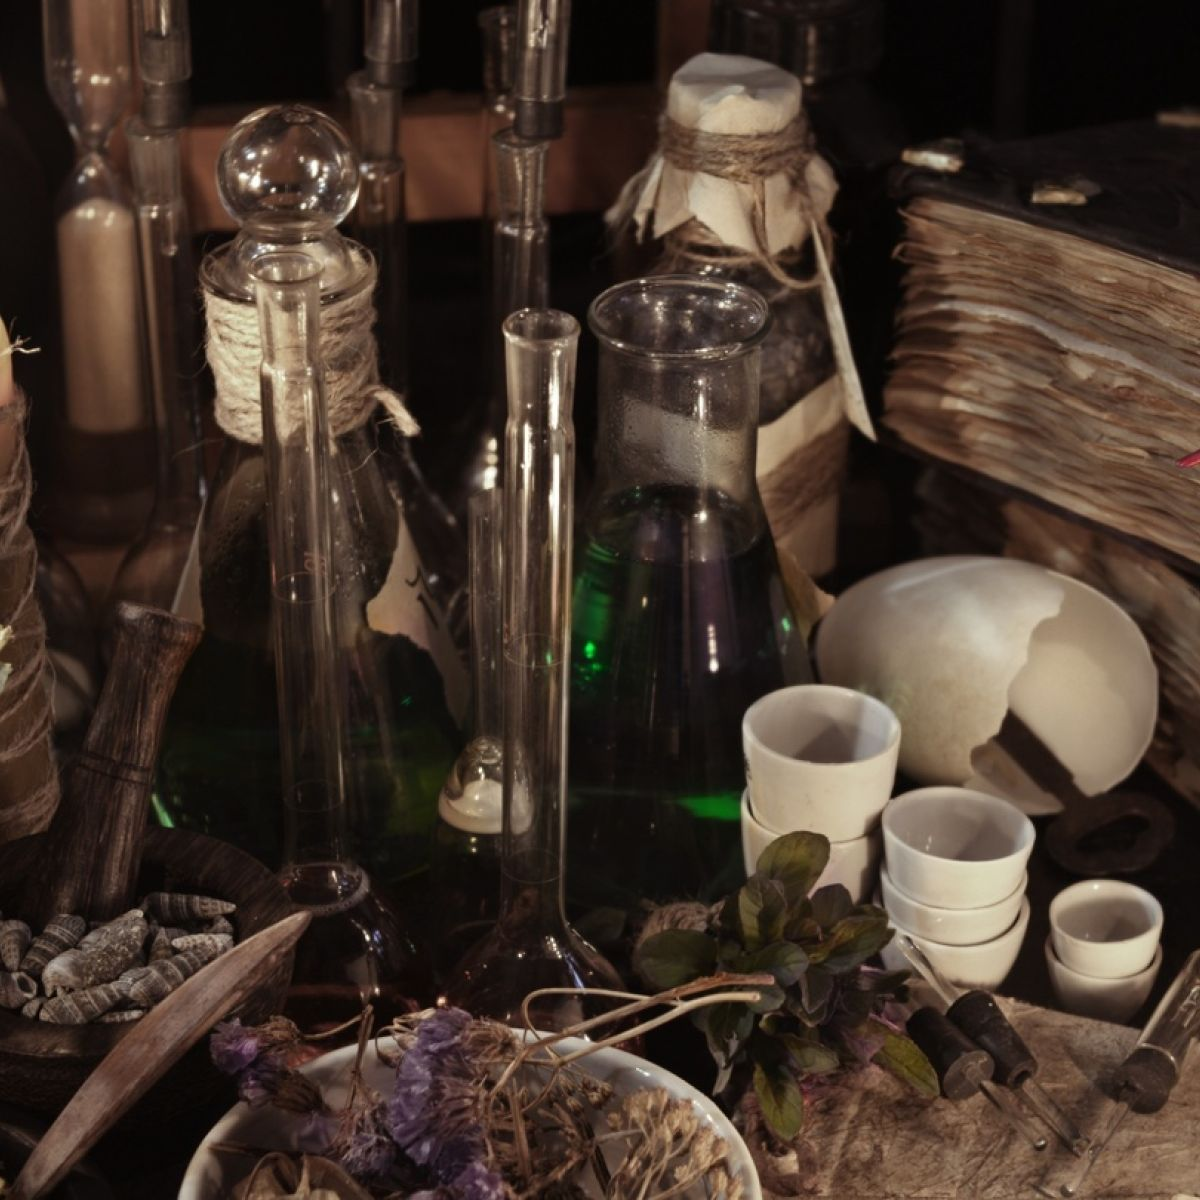 Is herbalism another form of magic?